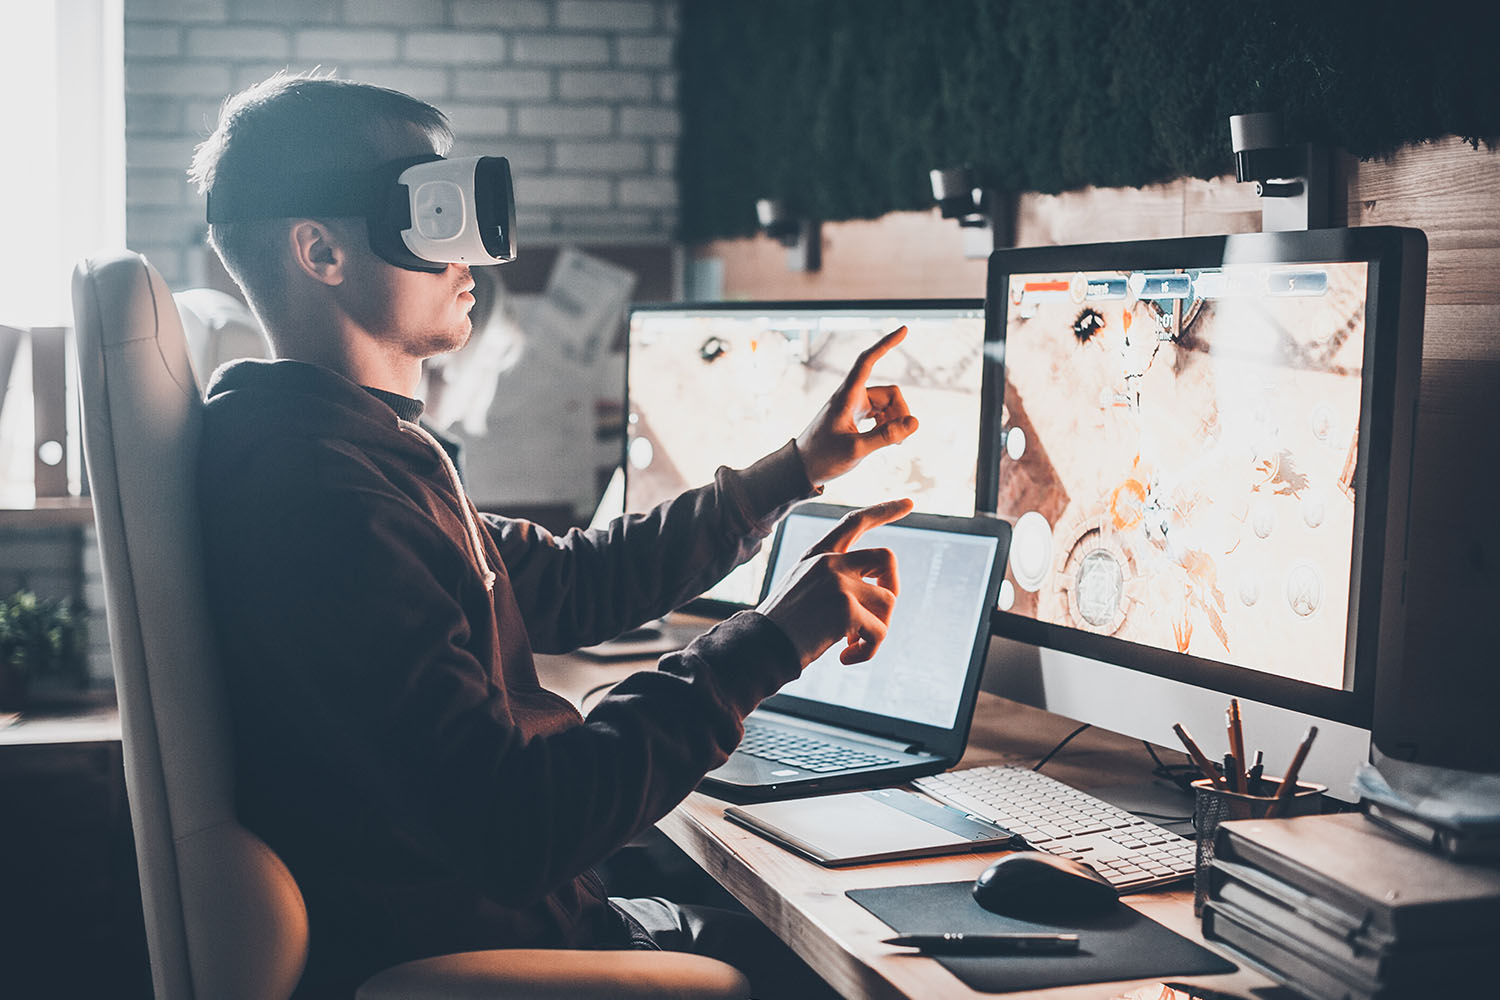 Calgary 3D animation, motion graphics and AV for 3D videos, XR VR AR experiences, apps, and websites